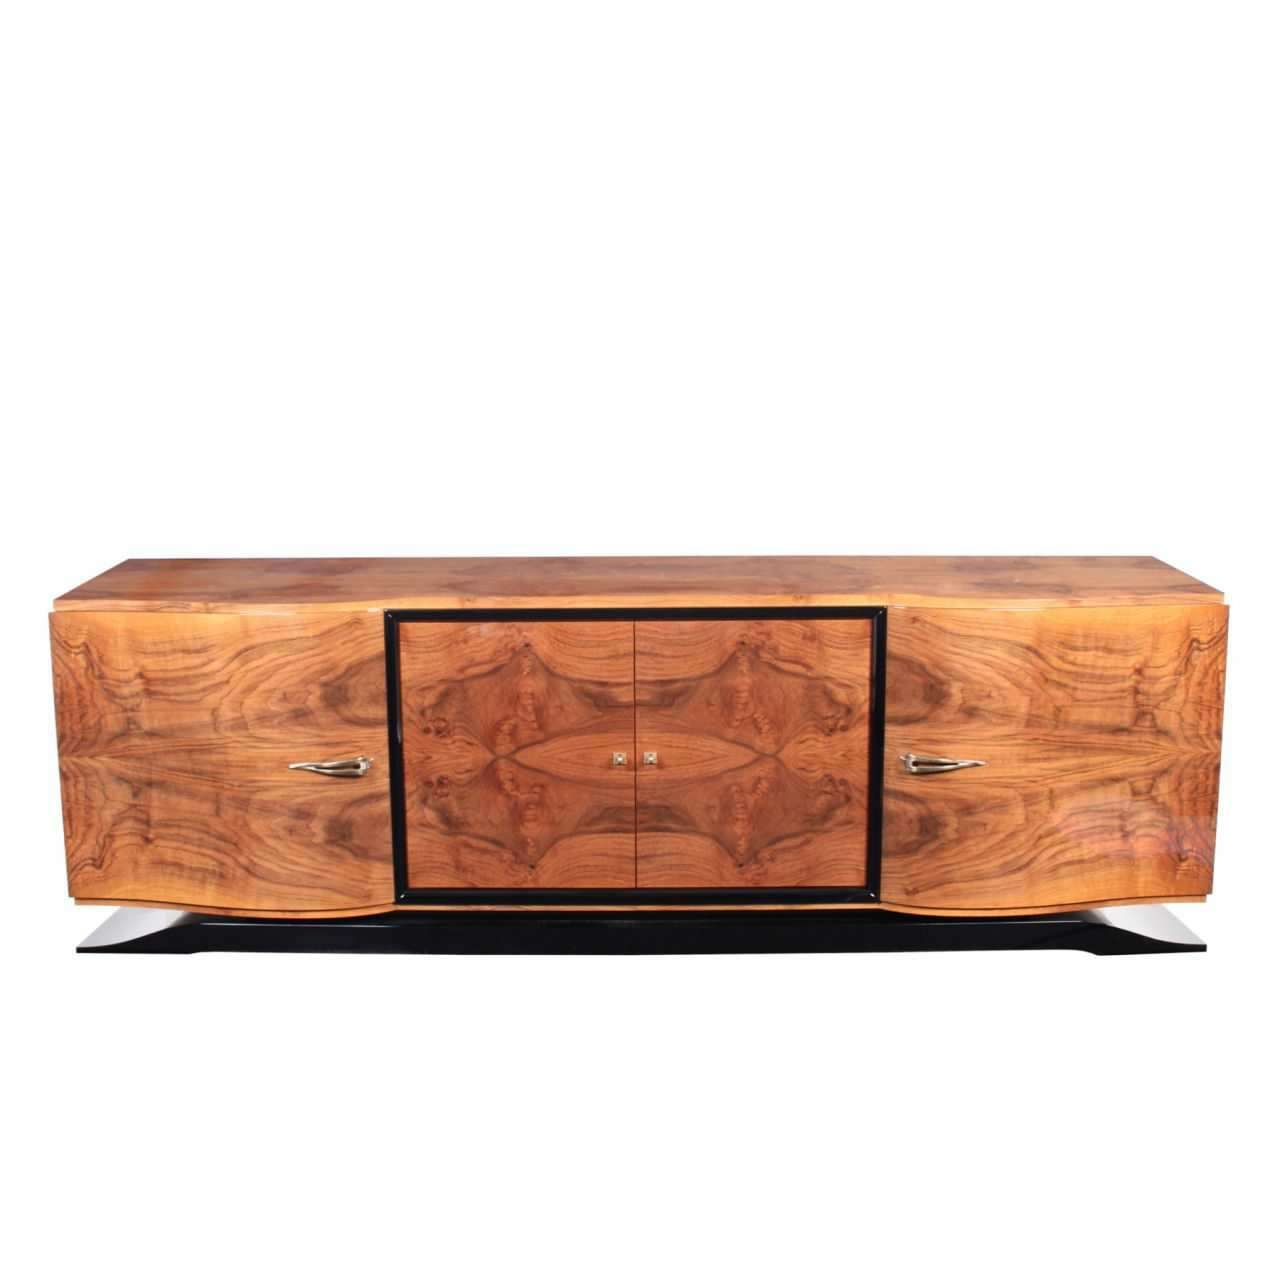 Art Deco Sideboard / Rosewood / Glossy Lacquered Wood – Sb001 Intended For Art Deco Sideboards (View 15 of 20)